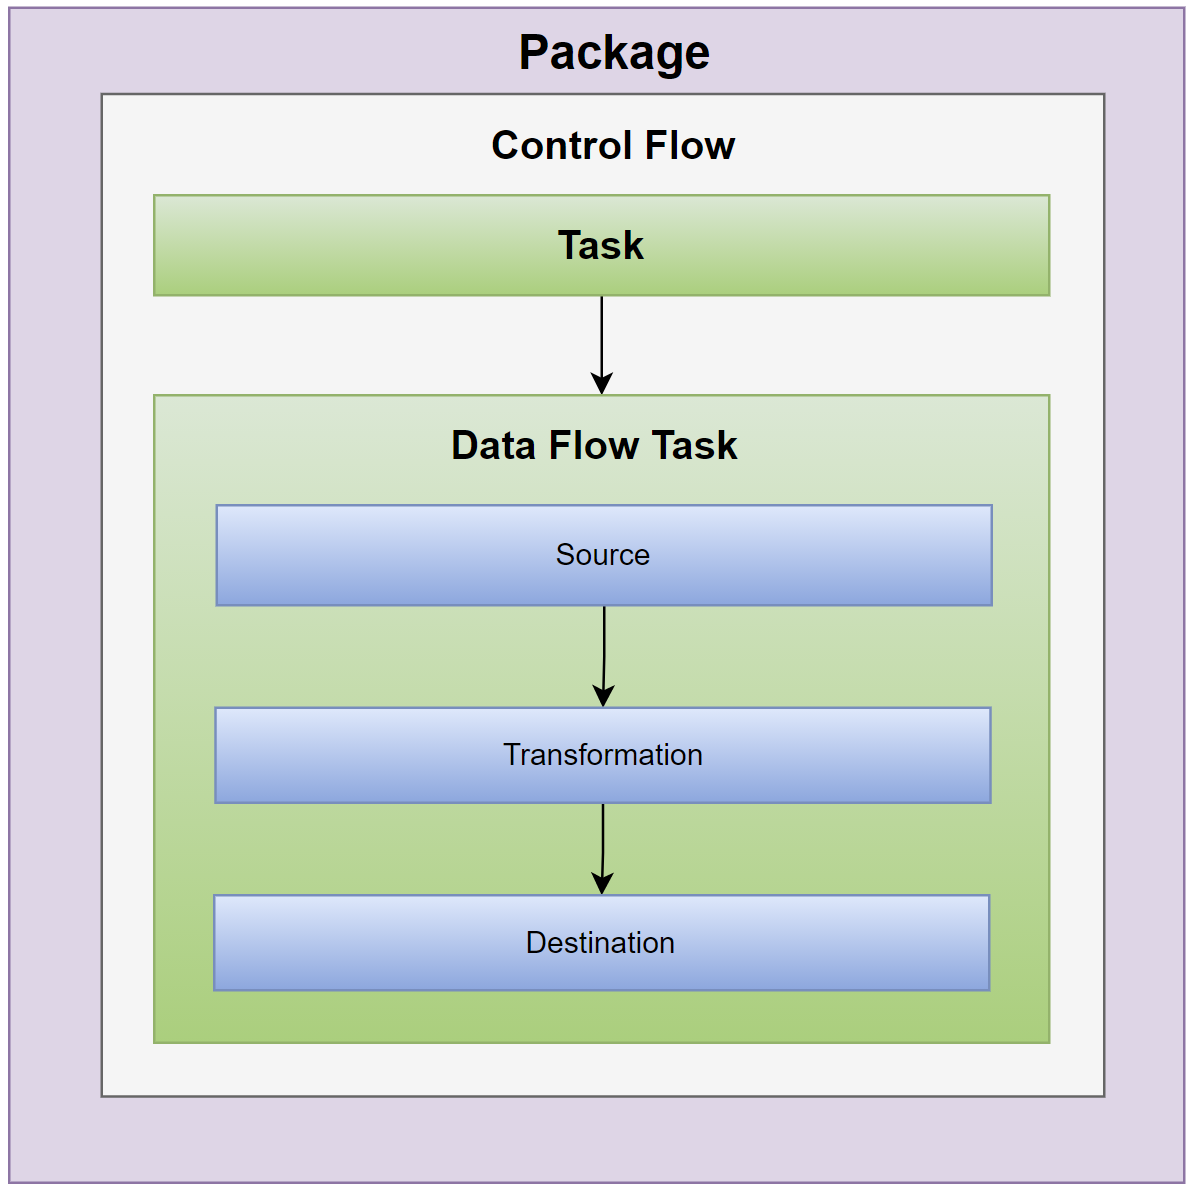 Package diagram